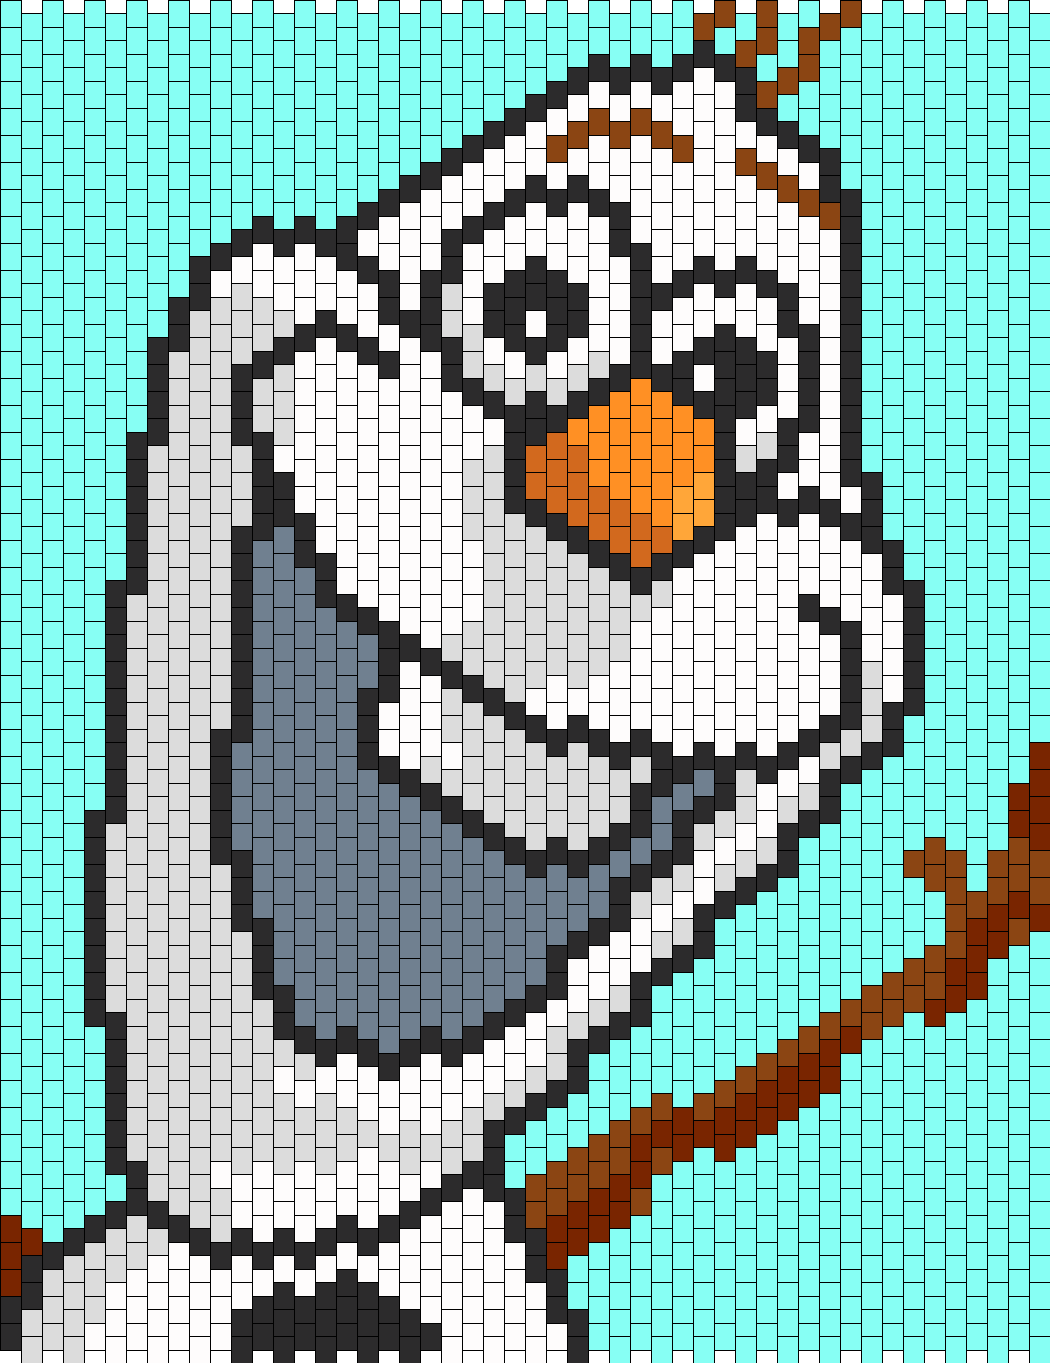 Olaf From Frozen Bead Pattern Peyote Bead Patterns Characters Bead Patterns